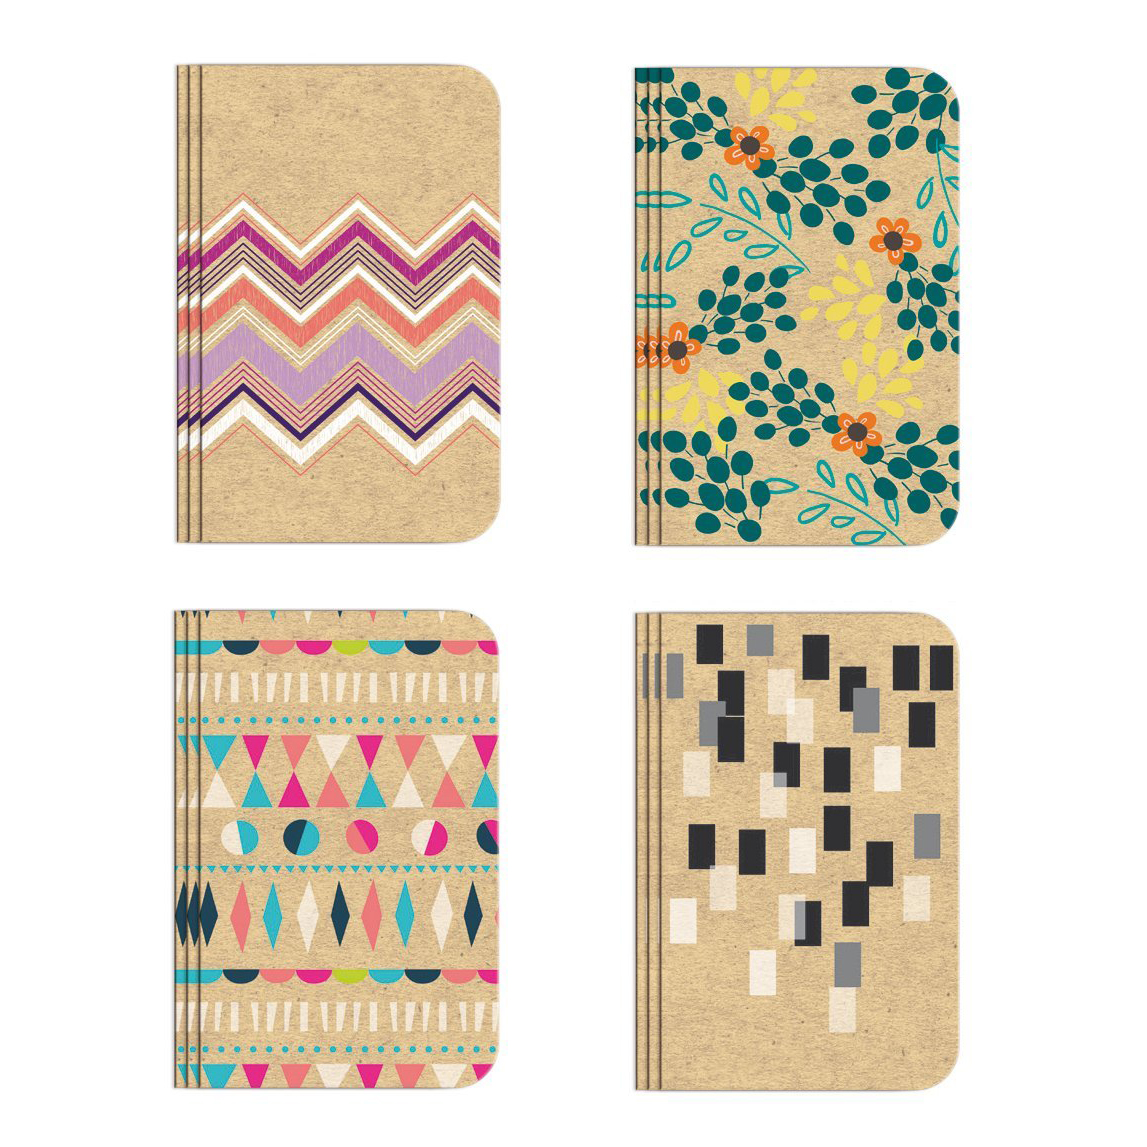 "Pocket Notebook Set (12 NotebooksTotal) 3.25"" x 5.25"" Lined Pages, Stitched Binding, 4 Different Designs Stationery Notepad"